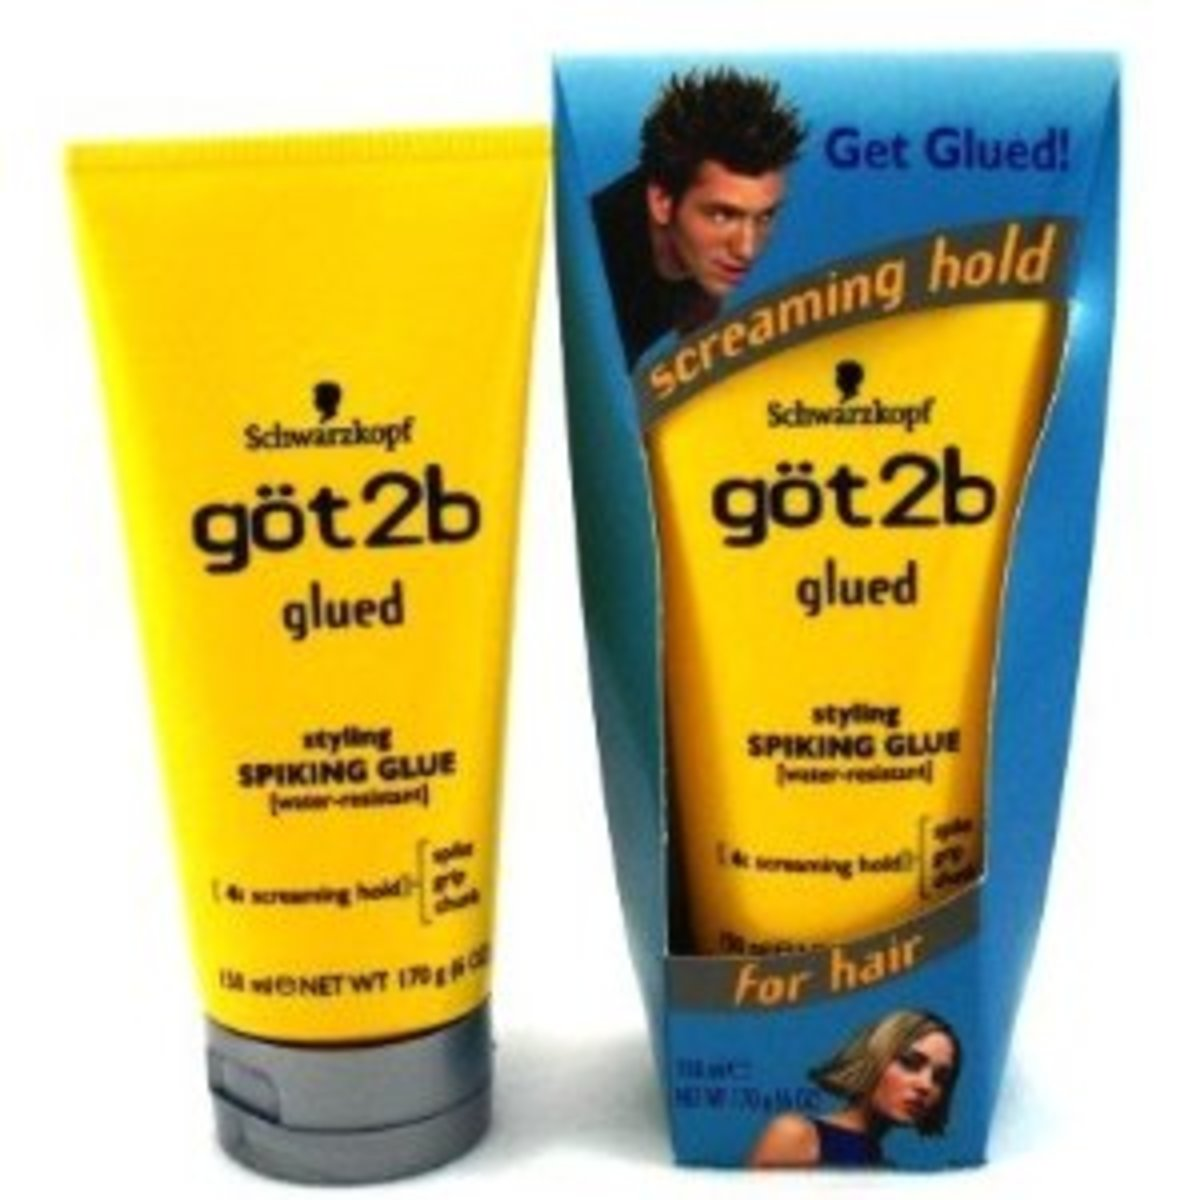 Hair Product Review (Got2b glued)